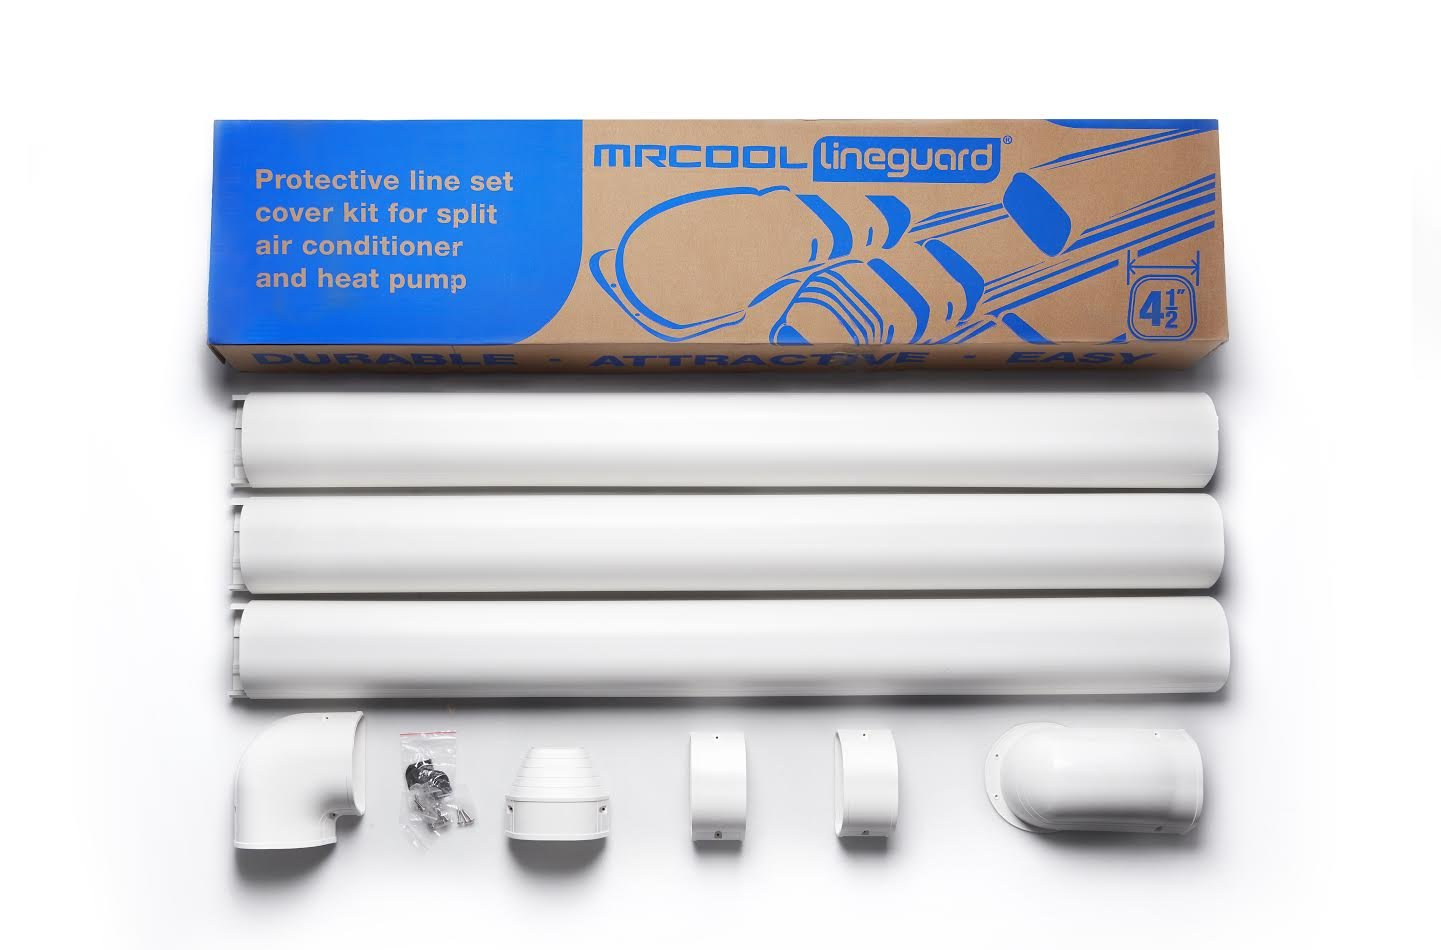 LineGuard 4.5 in. 16-Piece Complete Line Set Cover Kit for Ductless Mini-Split or Central System MRCOOL